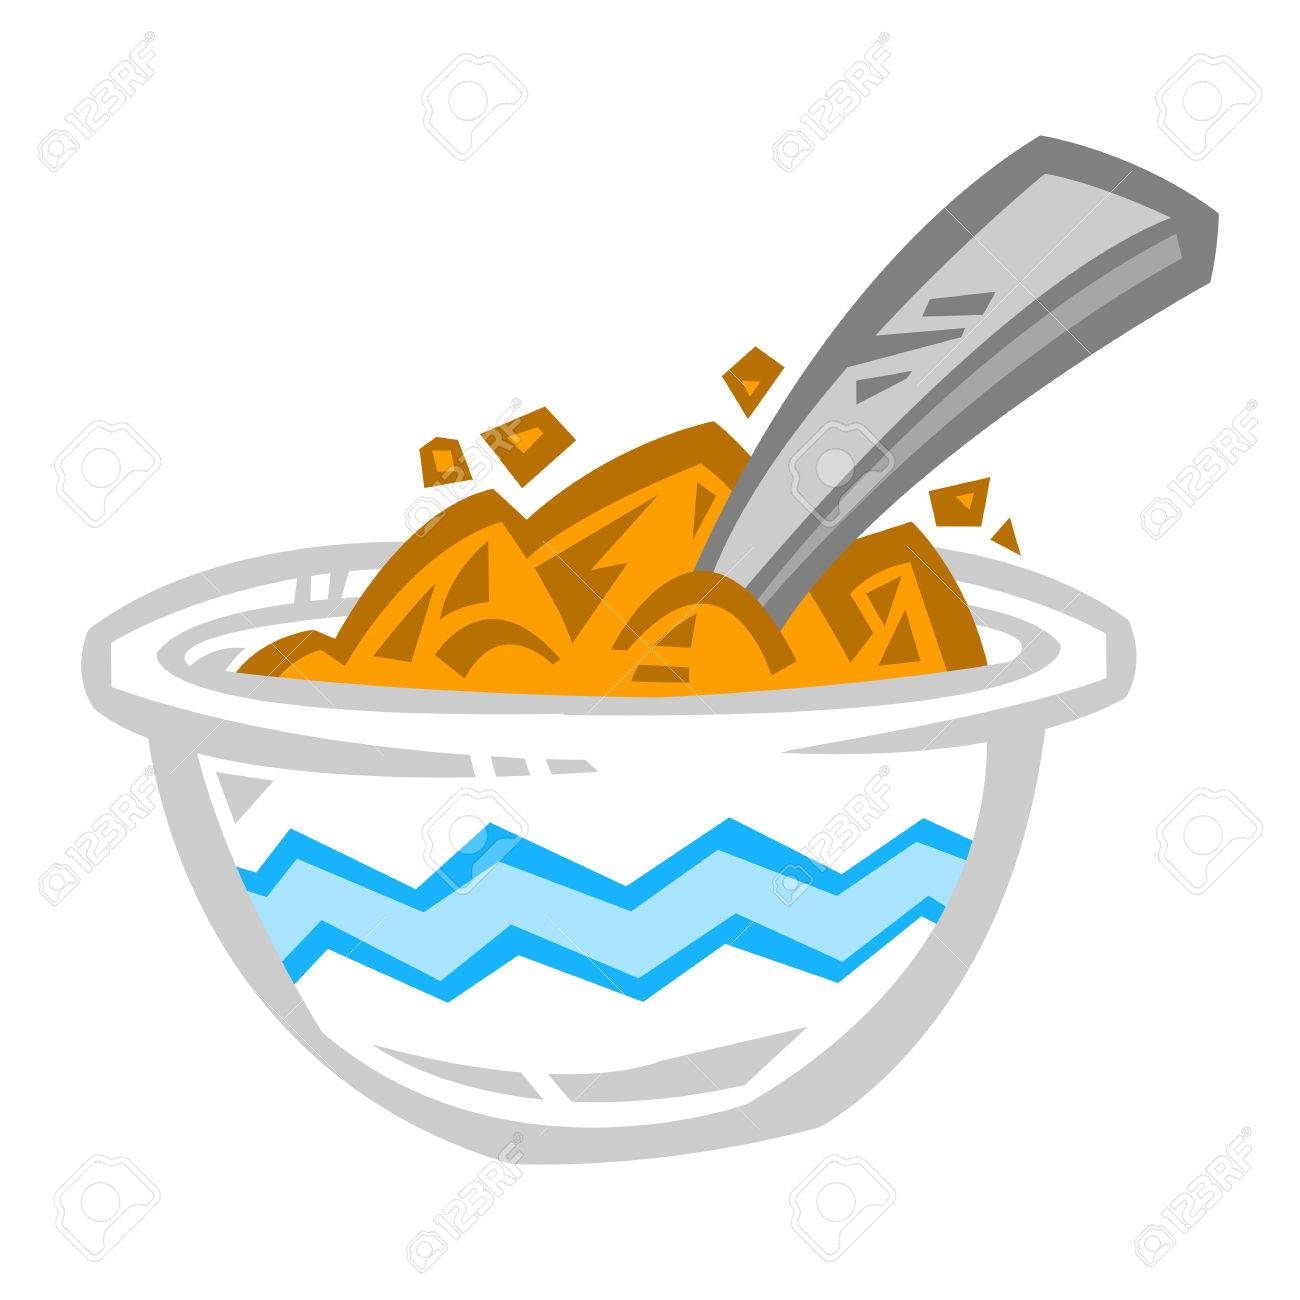 hight resolution of bowl of cereal icon stock vector 65864014